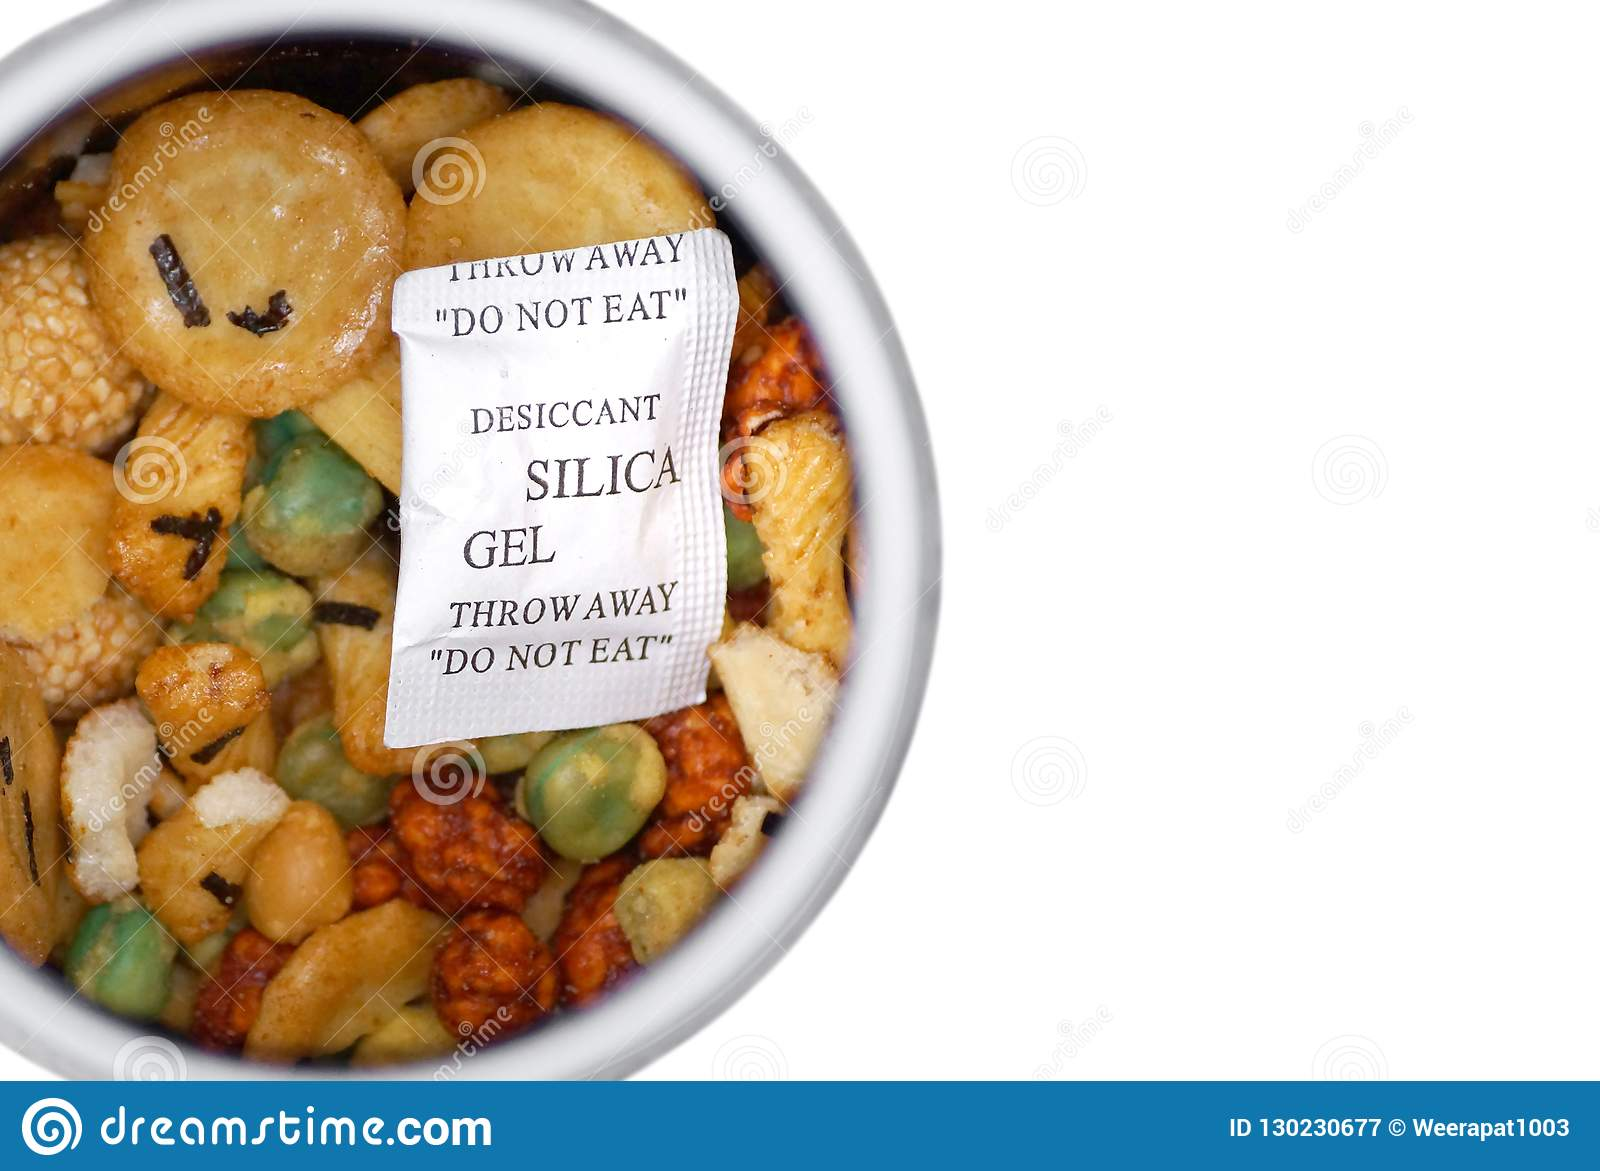 A silica gel pack stock image  Image of clear, granular